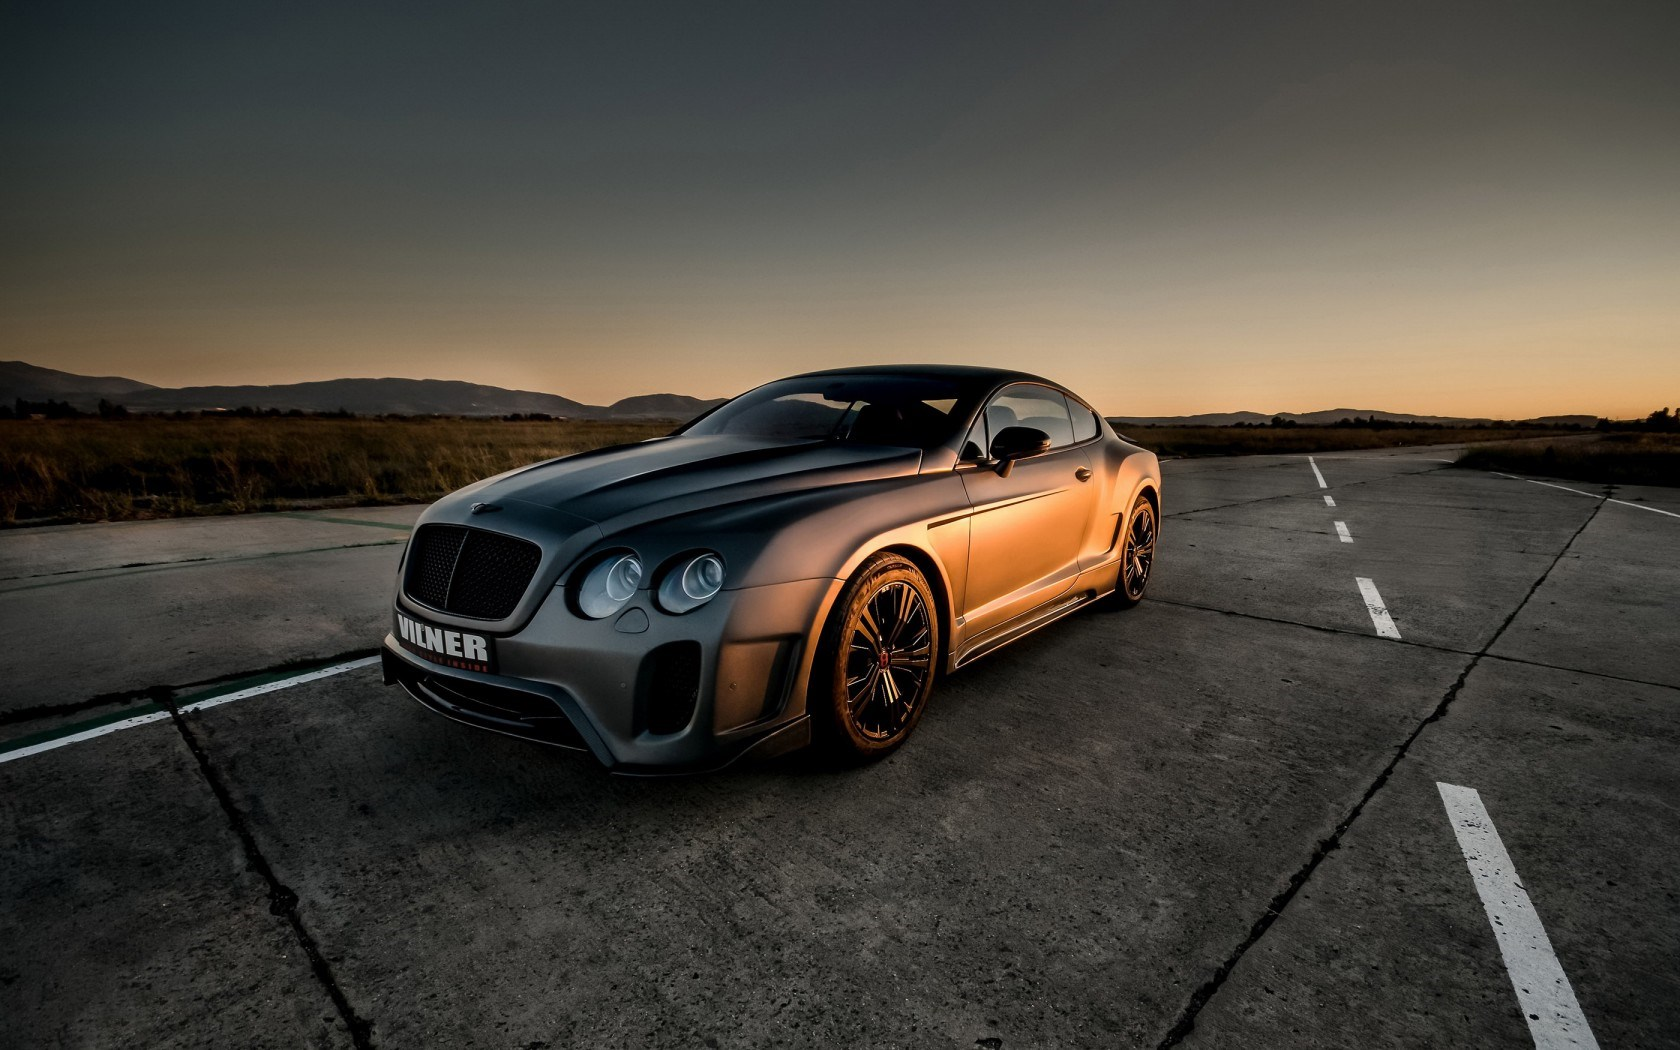 1680x1050 - Bentley Continental GT Wallpapers 7